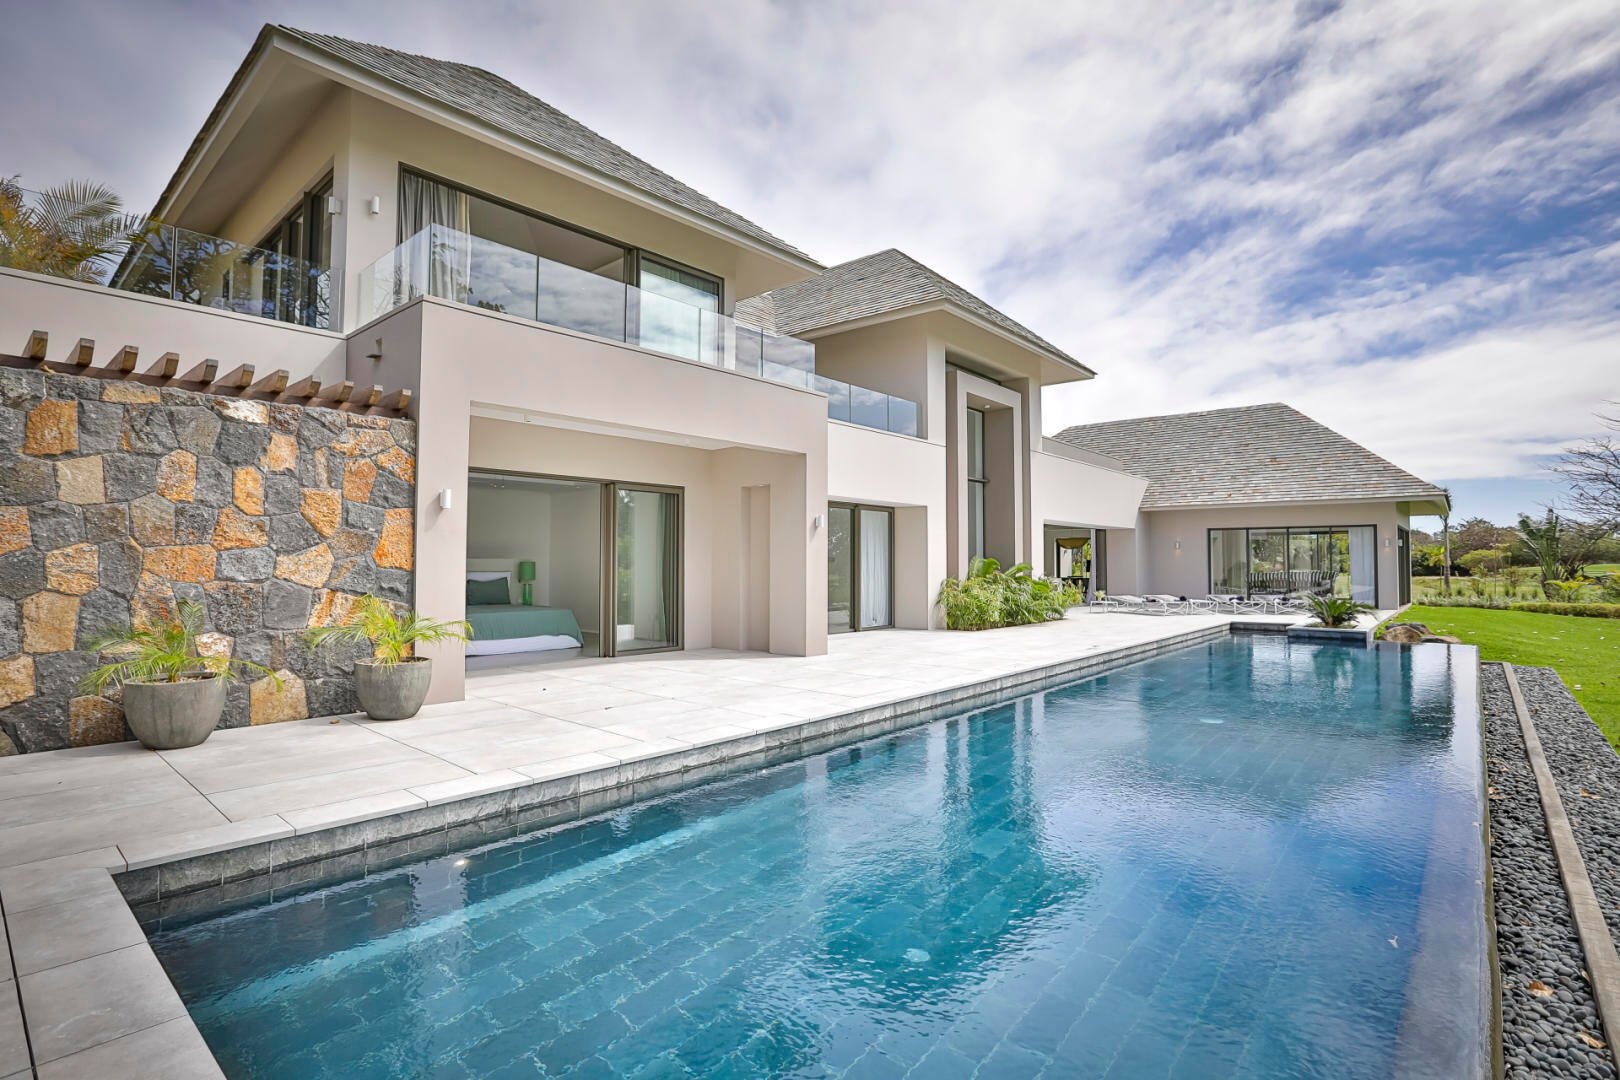 Villa in Beau Champ, Flacq District, Mauritius 1